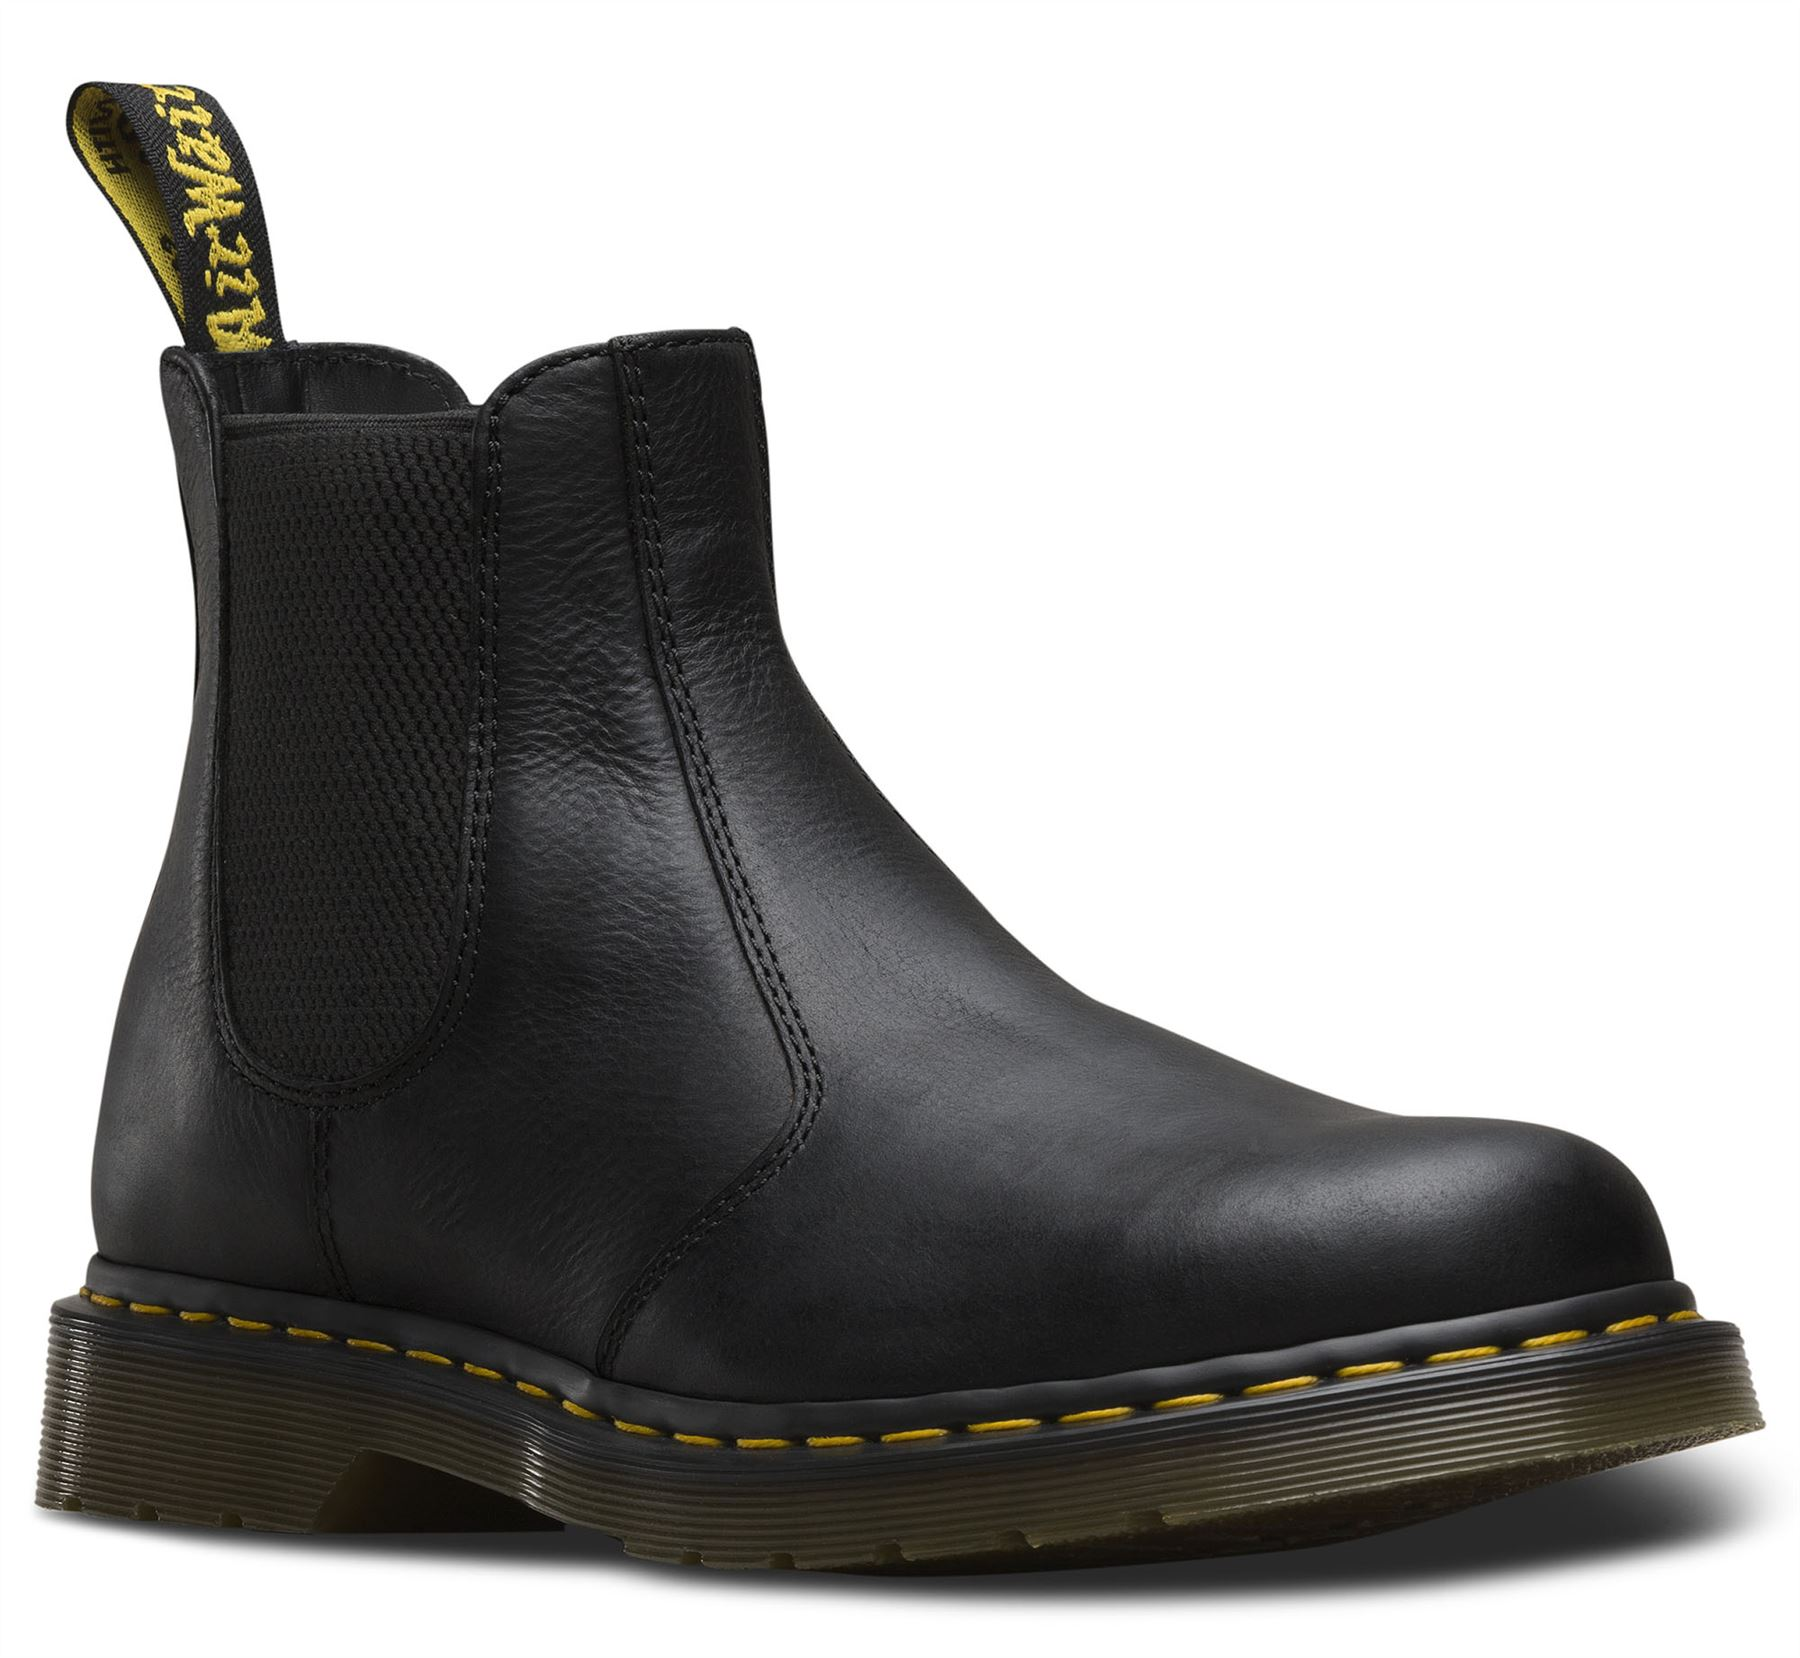 dr martens 2976 chelsea dealer premium carpathian leather ankle boots ebay. Black Bedroom Furniture Sets. Home Design Ideas